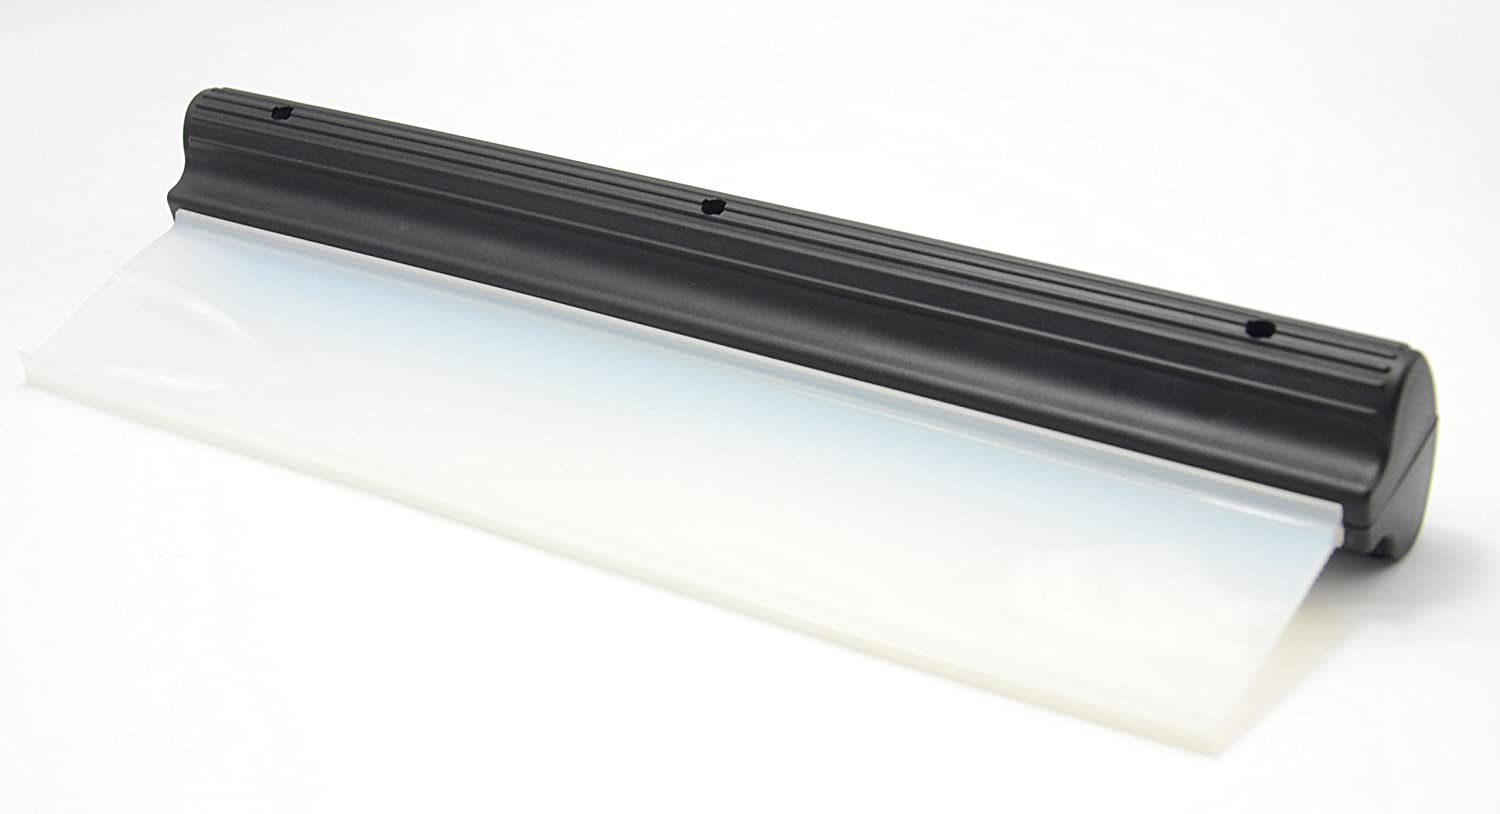 Ska Direct Professional Automotive Wiper Blade Squeegee,Silicone Water Blade,Better Than Car Drying Towel,Classic 12 Inch Black